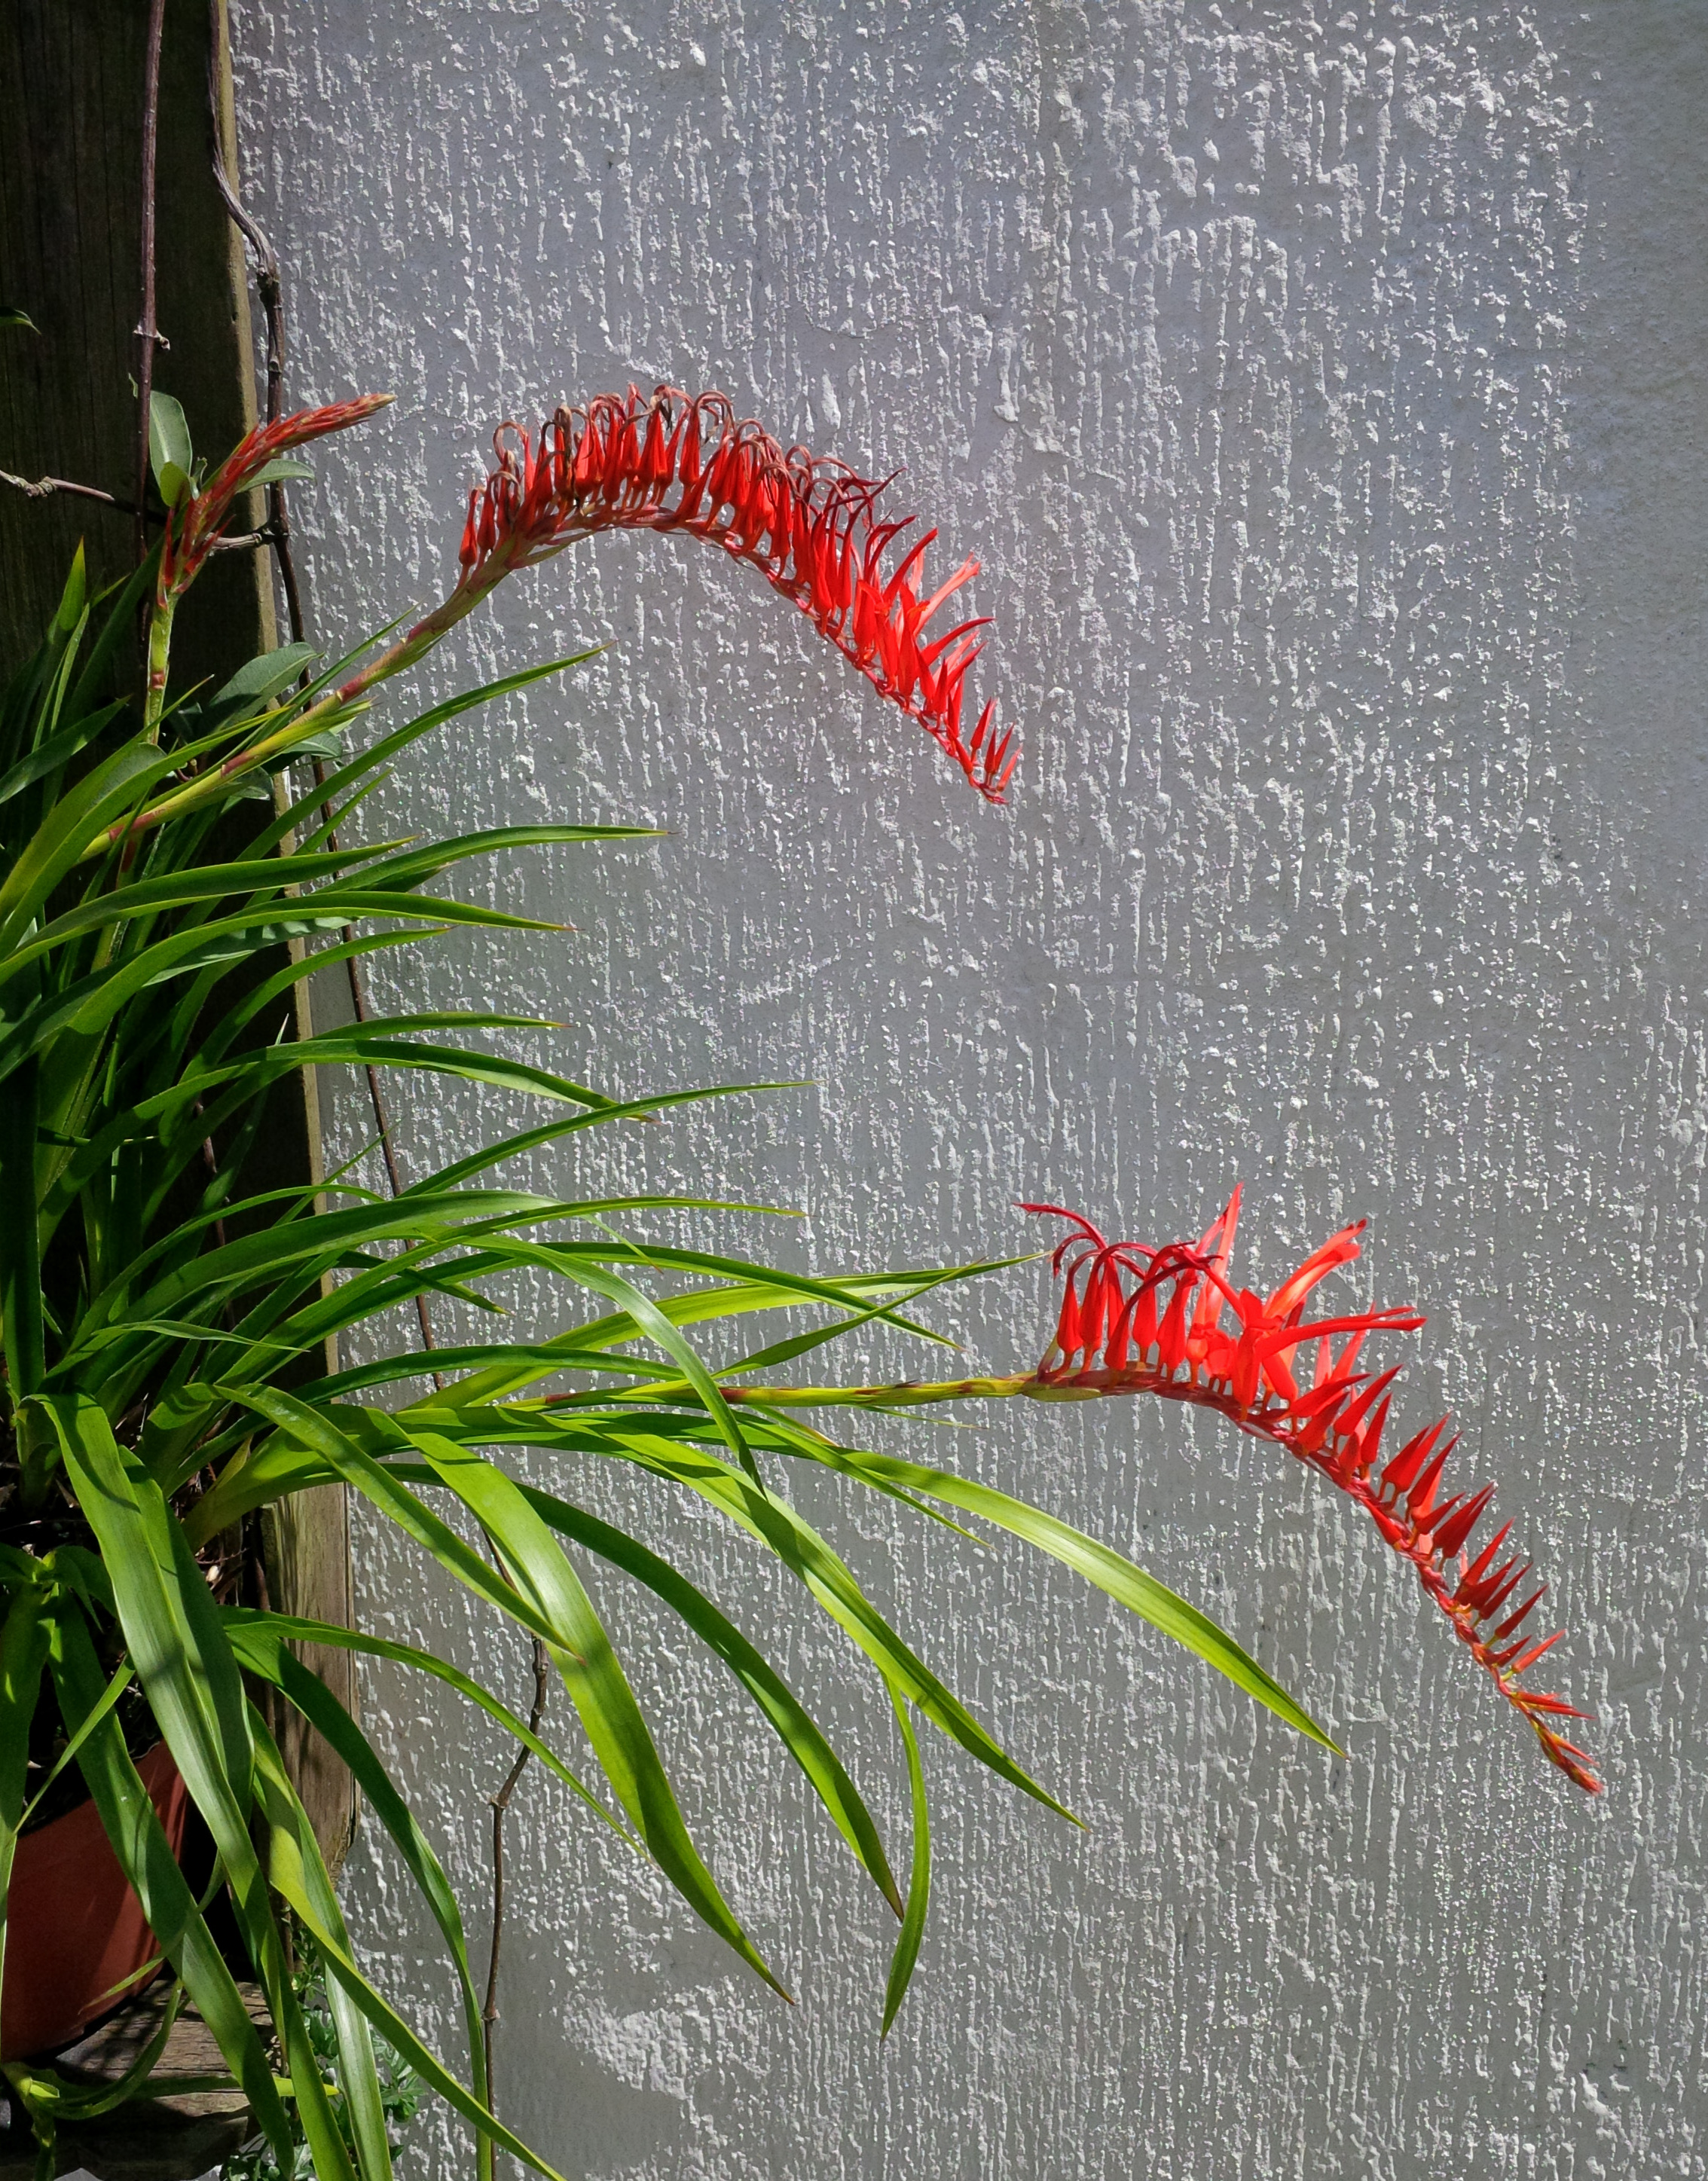 The spectacular southern Ecuadoran  Pitcairnia bergii  growing fully exposed on a wall planting in the author's Guatemalan garden. This is an exceptionally desirable small species suitable for pot culture.